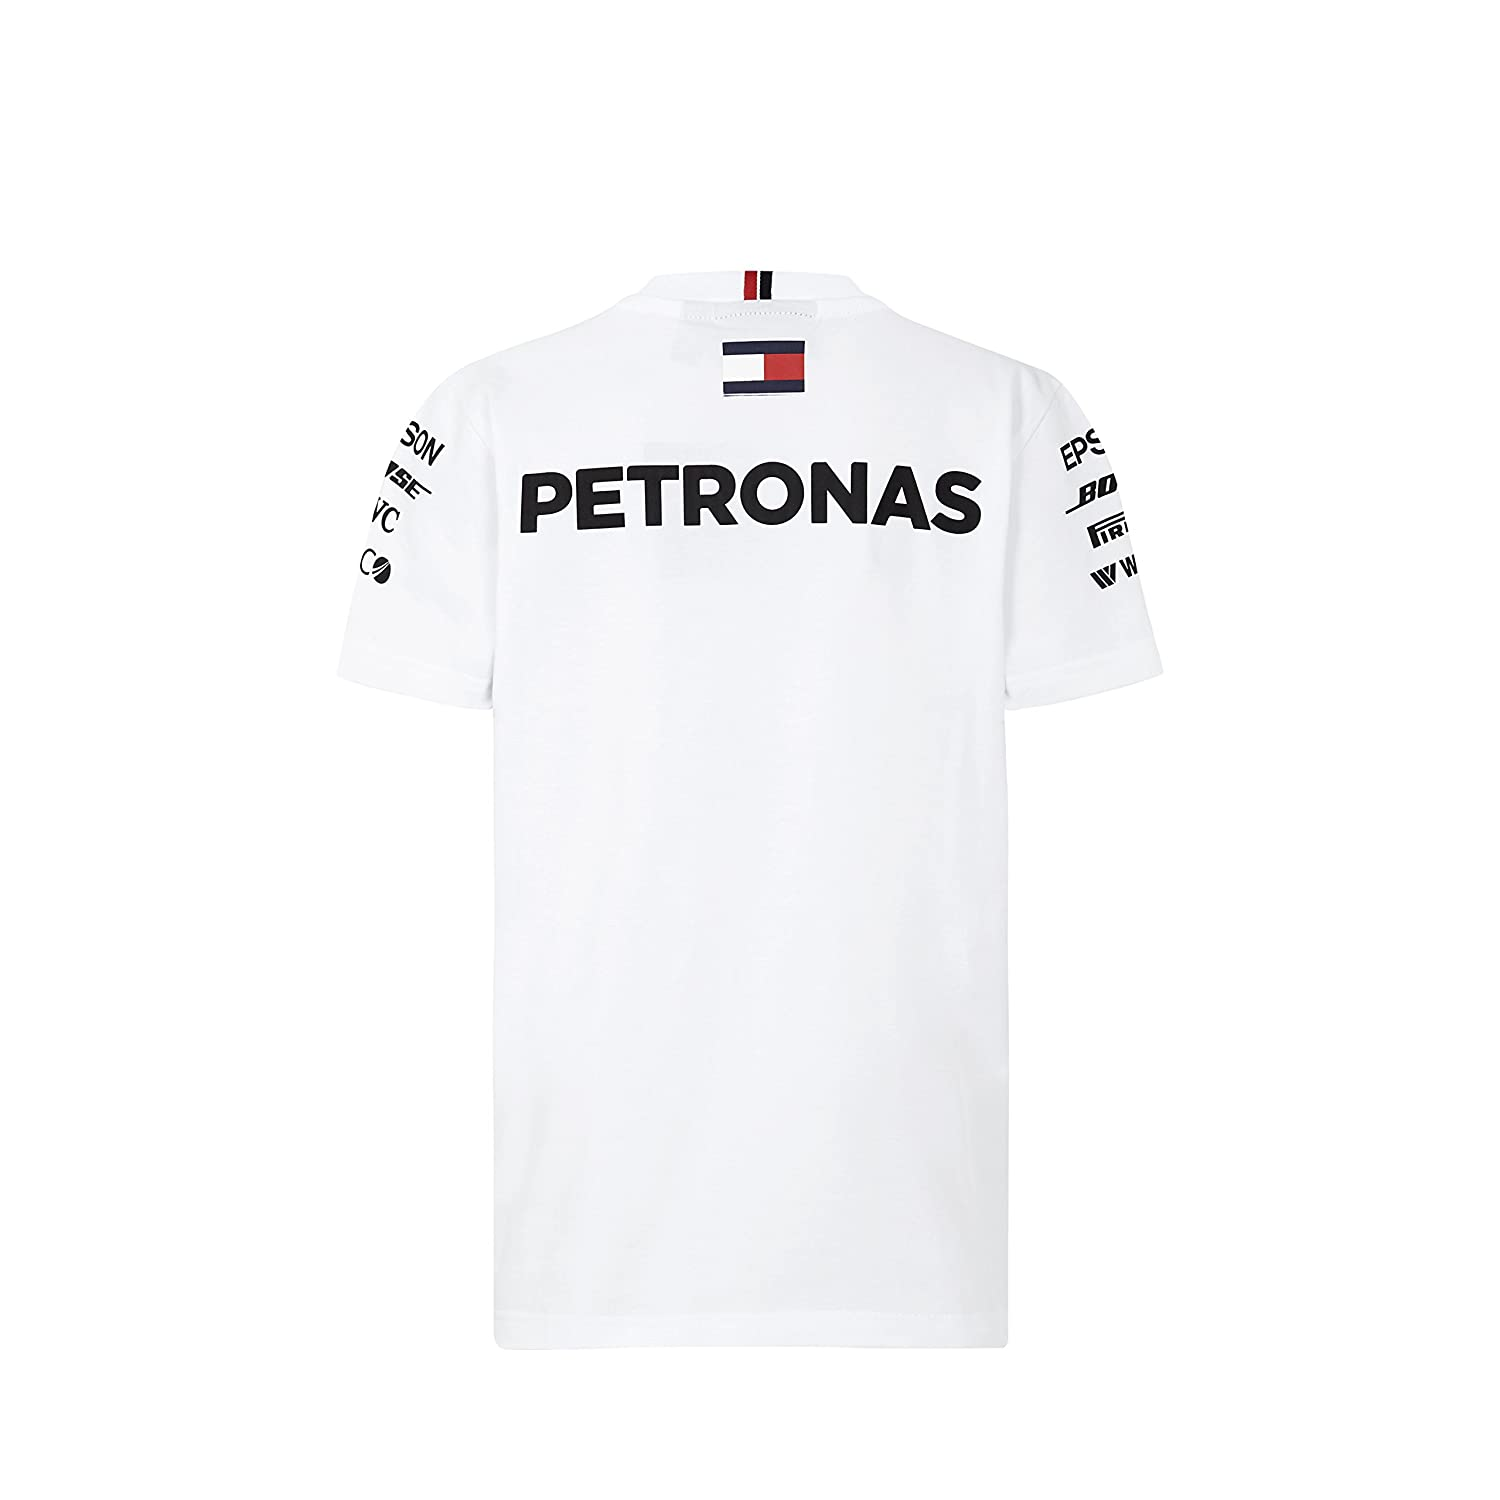 ab263334 Amazon.com: Mercedes Benz AMG Petronas Kids White Authentic F1 Team T-Shirt:  Sports & Outdoors